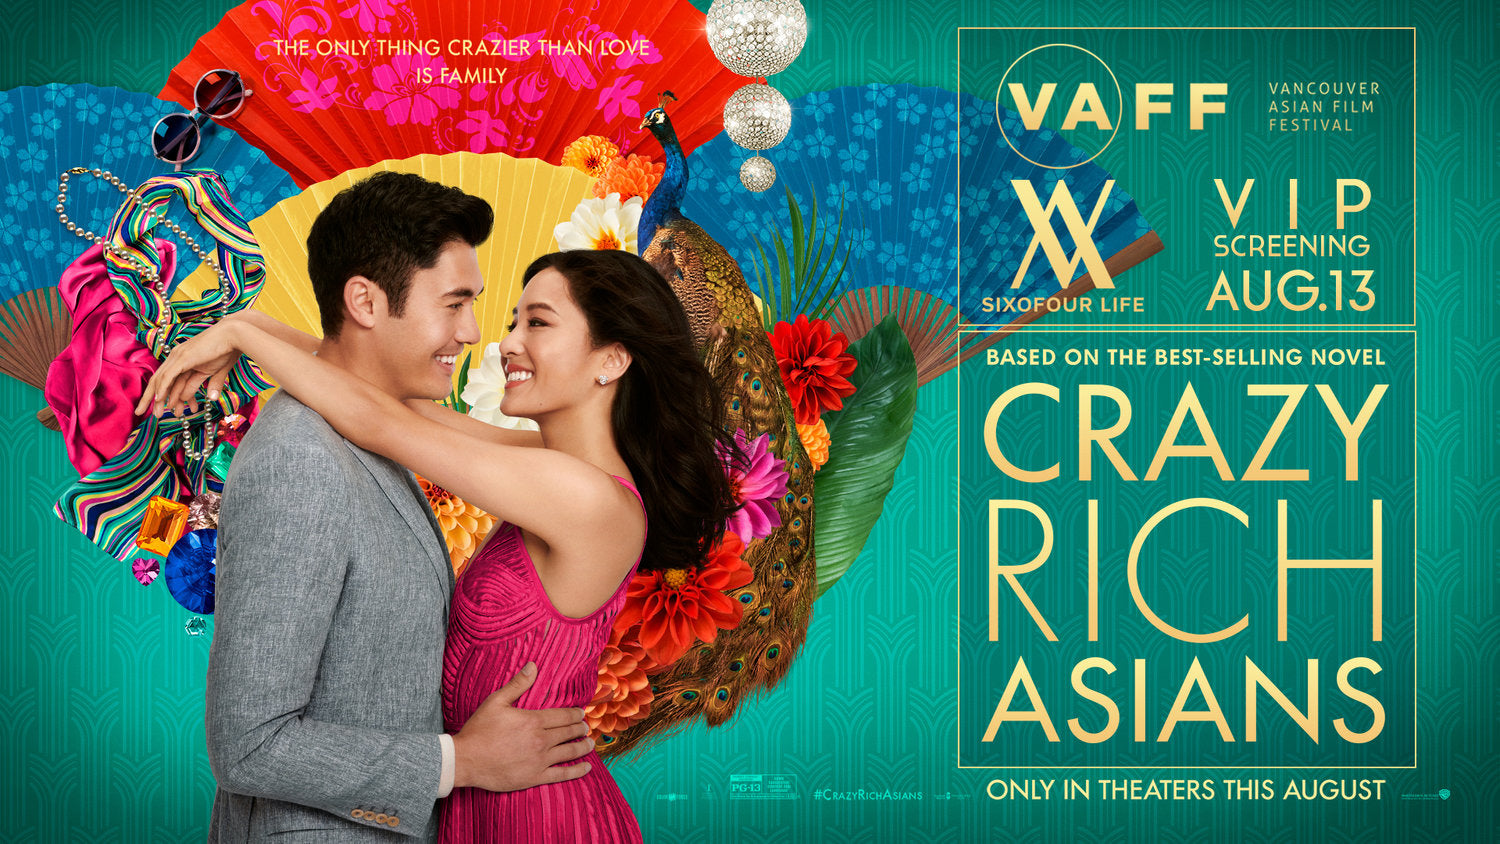 Sixofour Life and VAFF Screening 'Crazy Rich Asians'